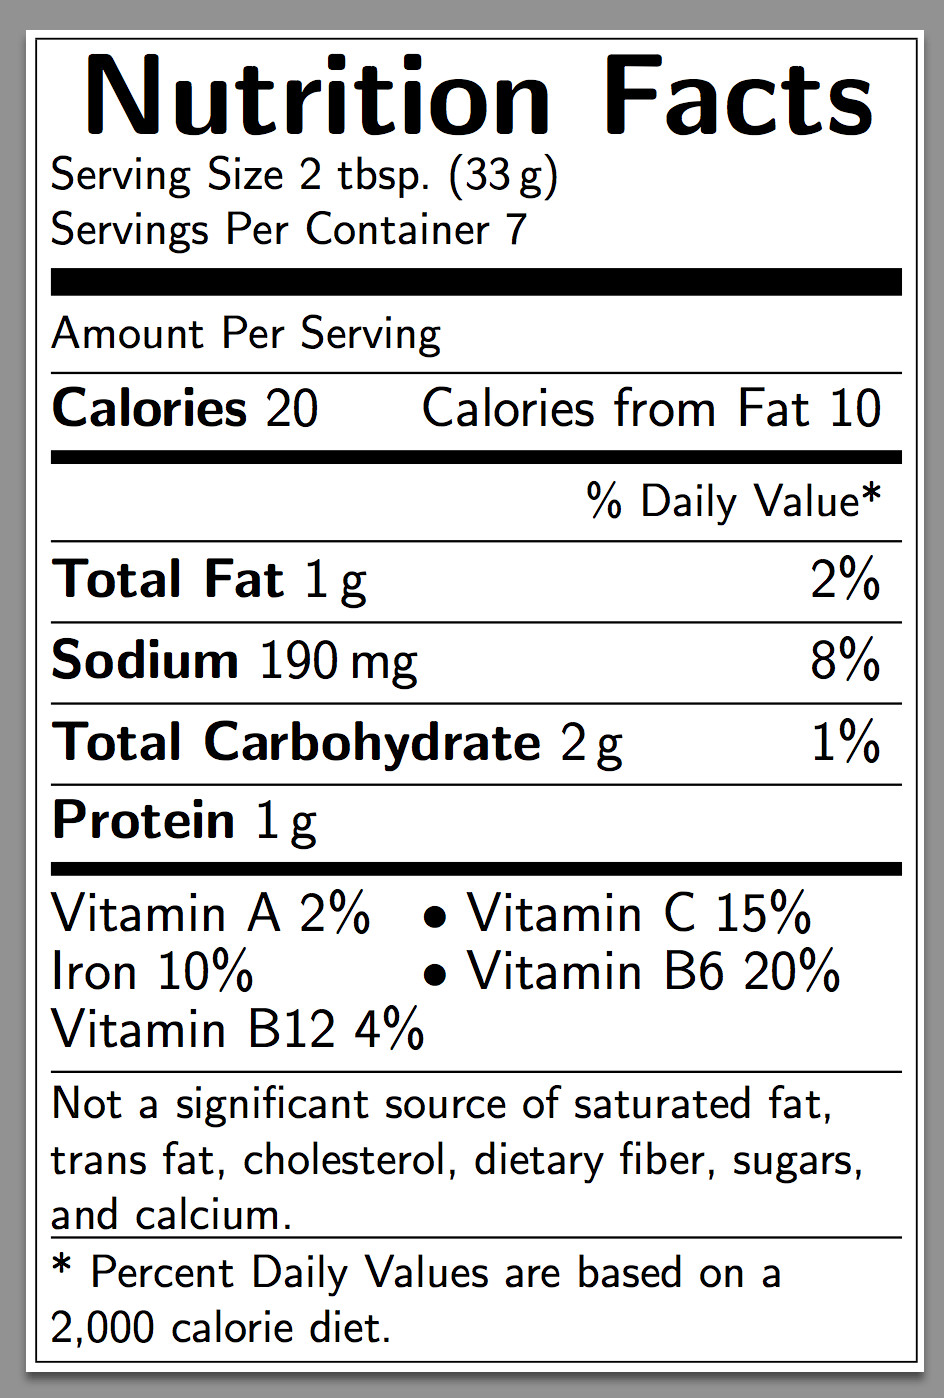 Nutrition Facts Template Word Diagrams How Can I Create A Nutrition Facts Label